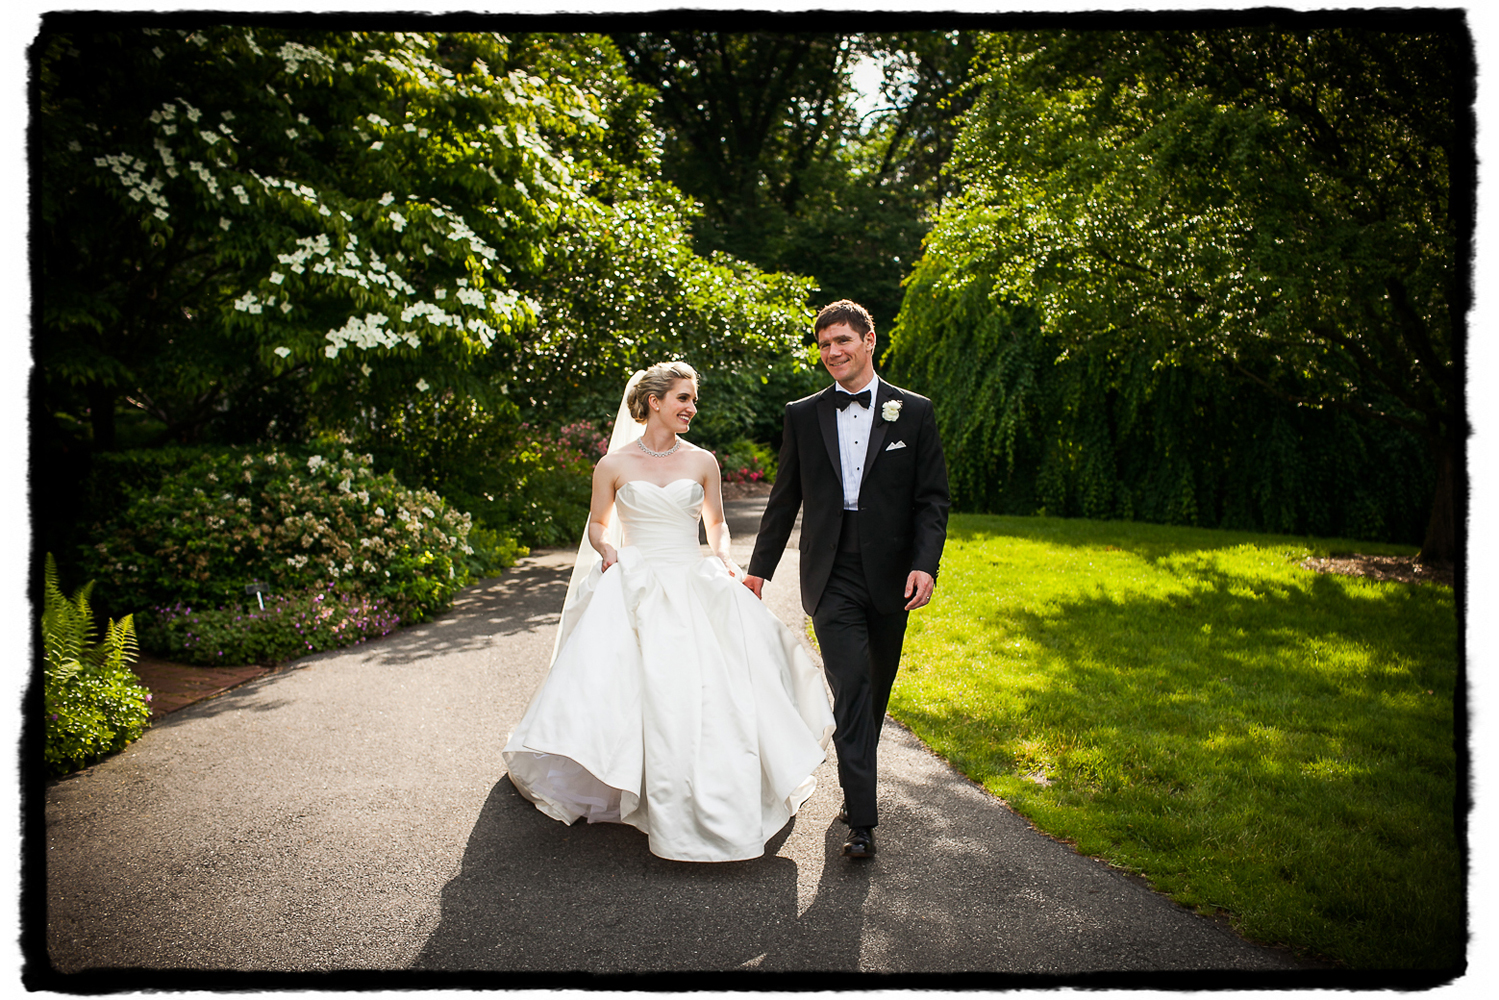 Sarah and Chris were picture perfect on their wedding day, shown here strolling through Freylinghuysen Arboretum.